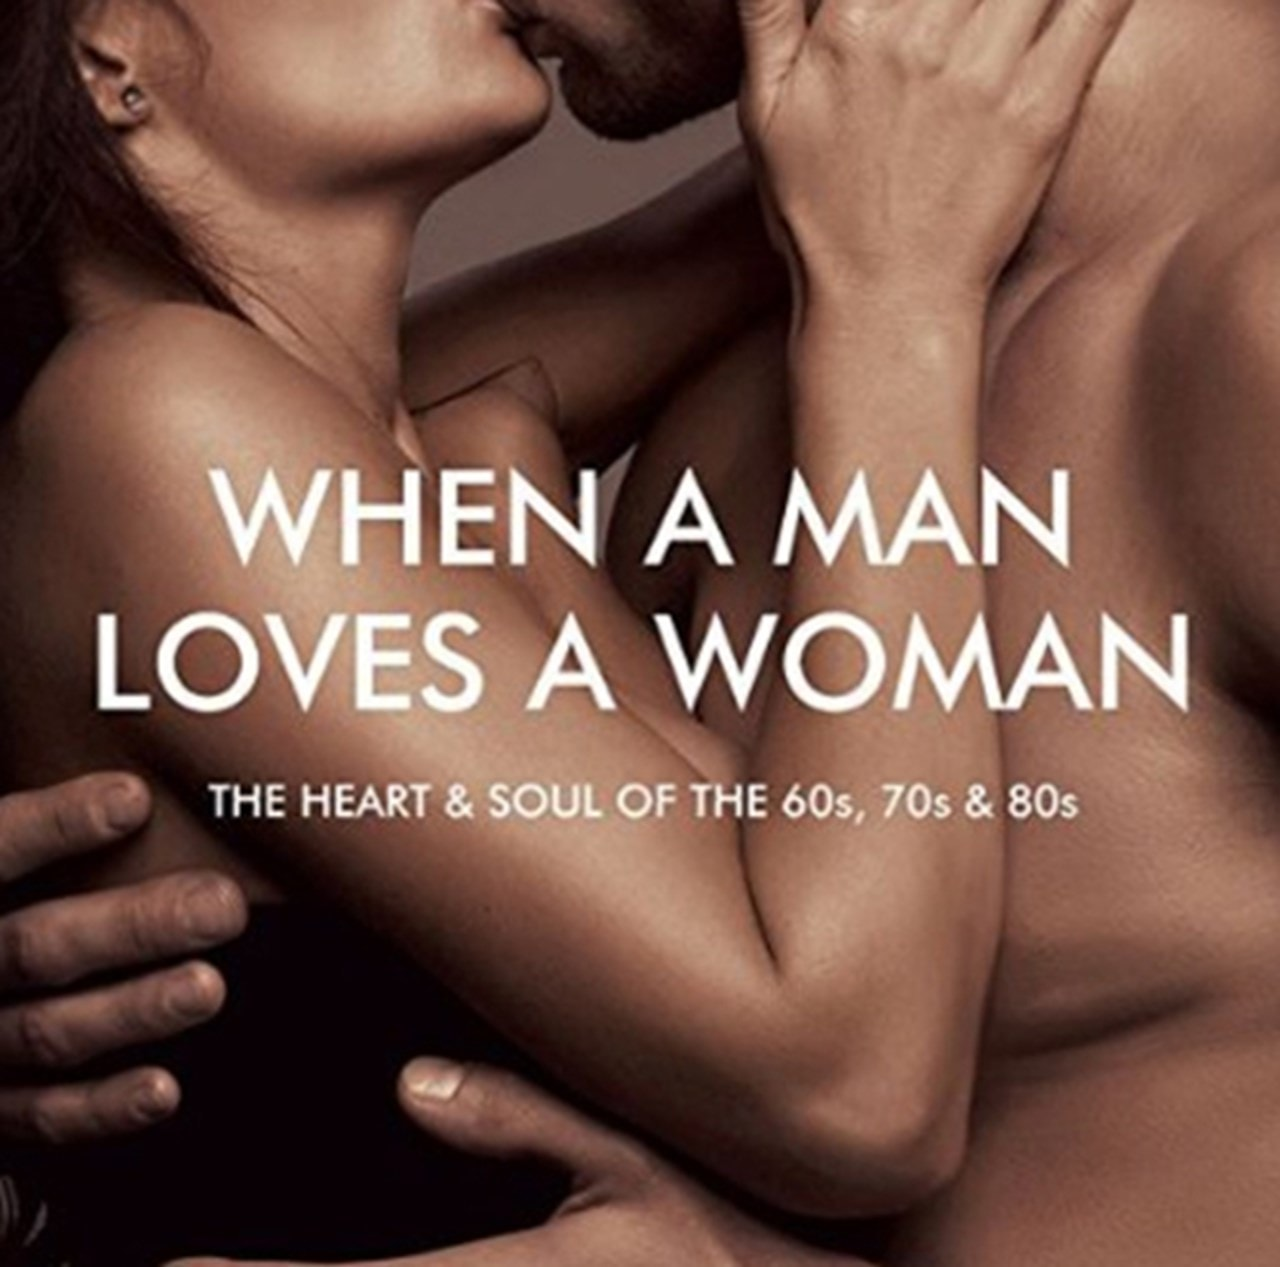 When a Man Loves a Woman: The Heart & Soul of the 60s, 70s & 80s - 1